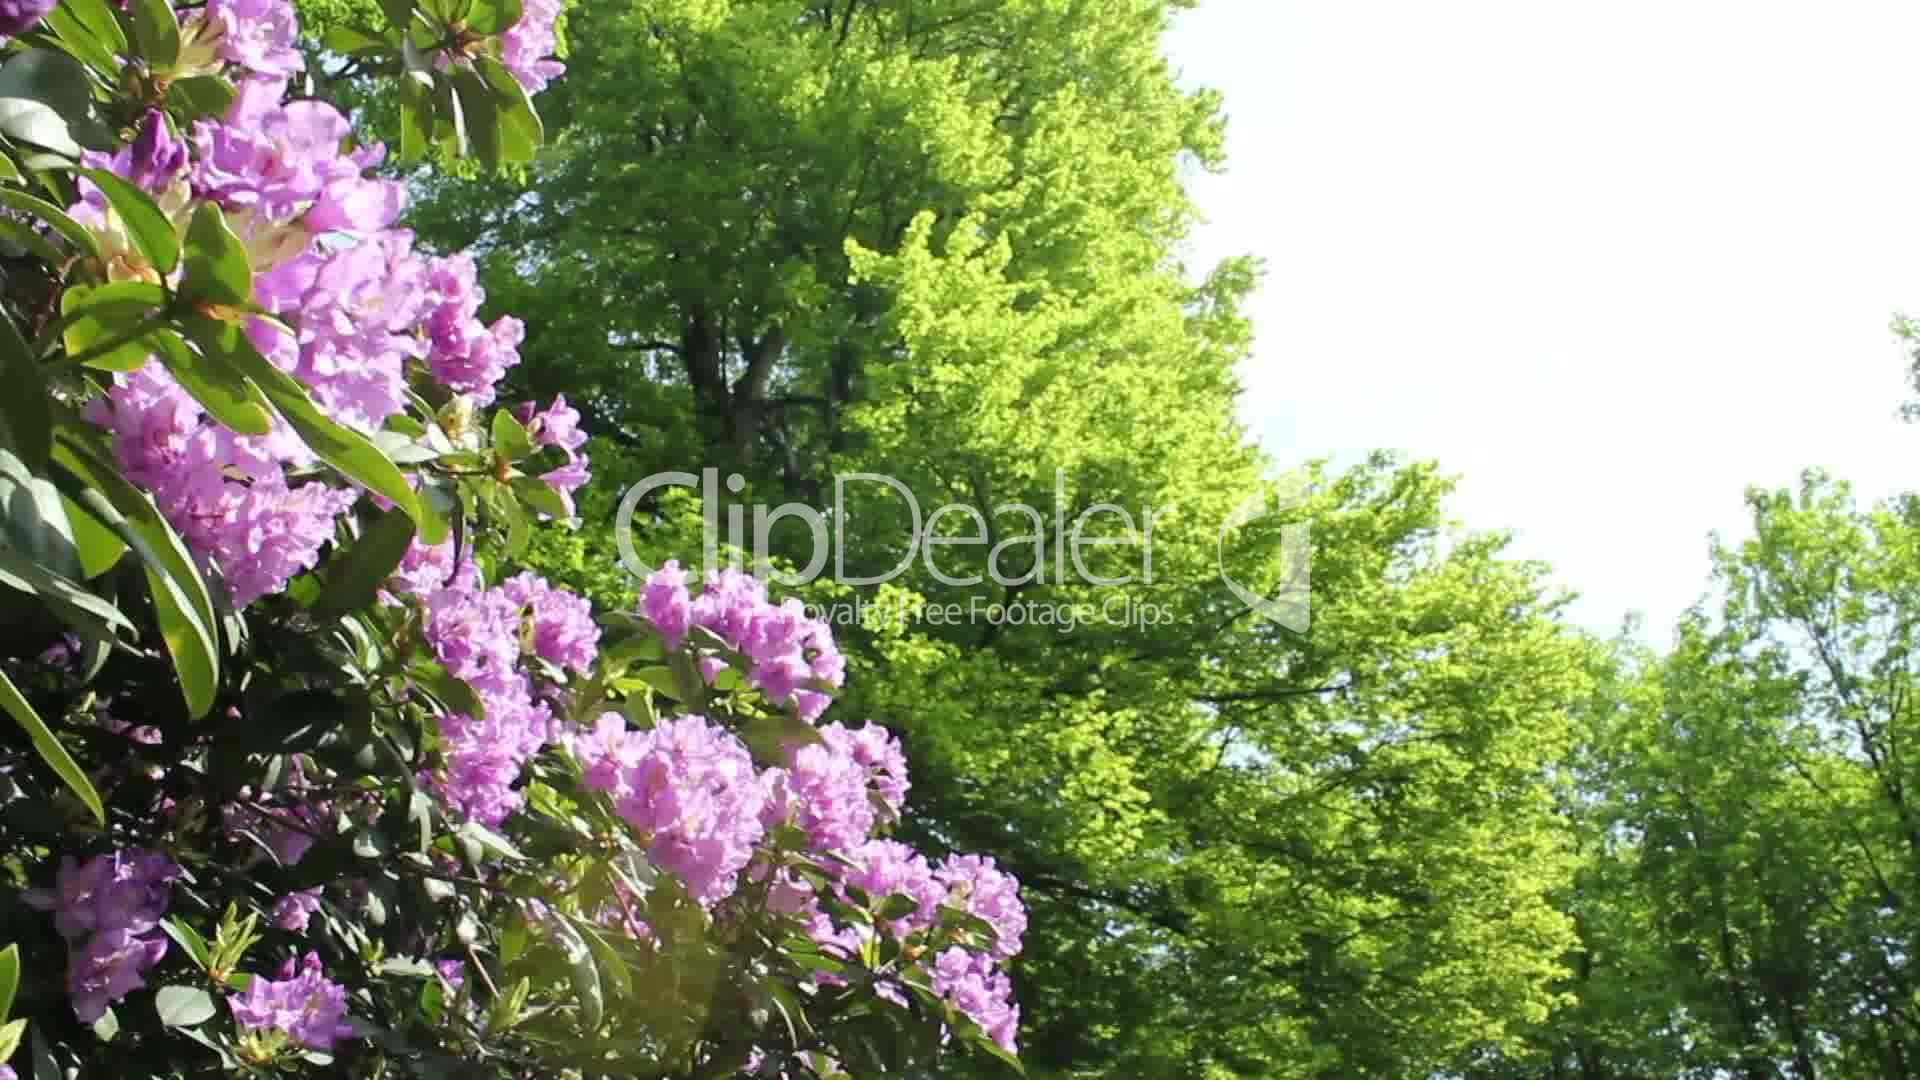 an ecology of the rhododendron Catawba rhododendron is a large-leaved, evergreen shrub reaching 6 to 10 feet high with large, lilac-purple flowers borne in clusters (trusses) in mid-to late spring.